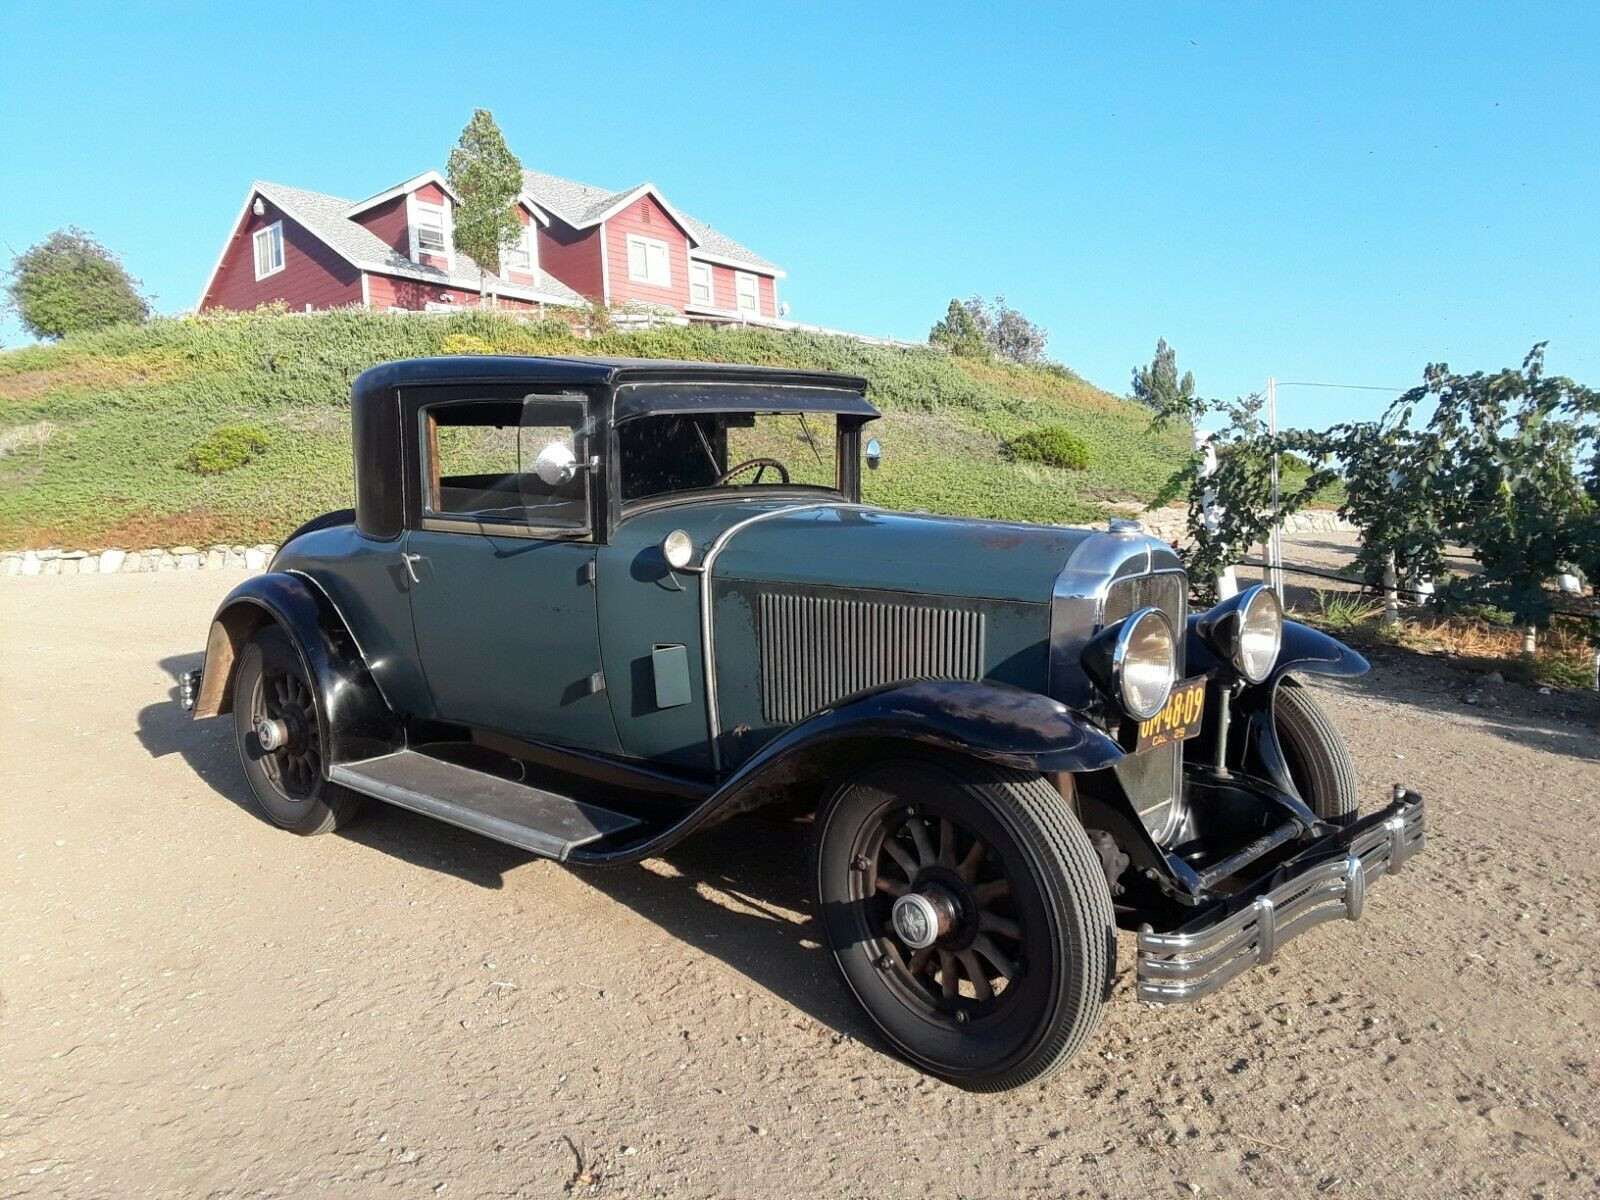 Beautiful Buick: This 1929 Buick Business Coupe Has Been In California Its Whole Life And Is Pretty Incredible